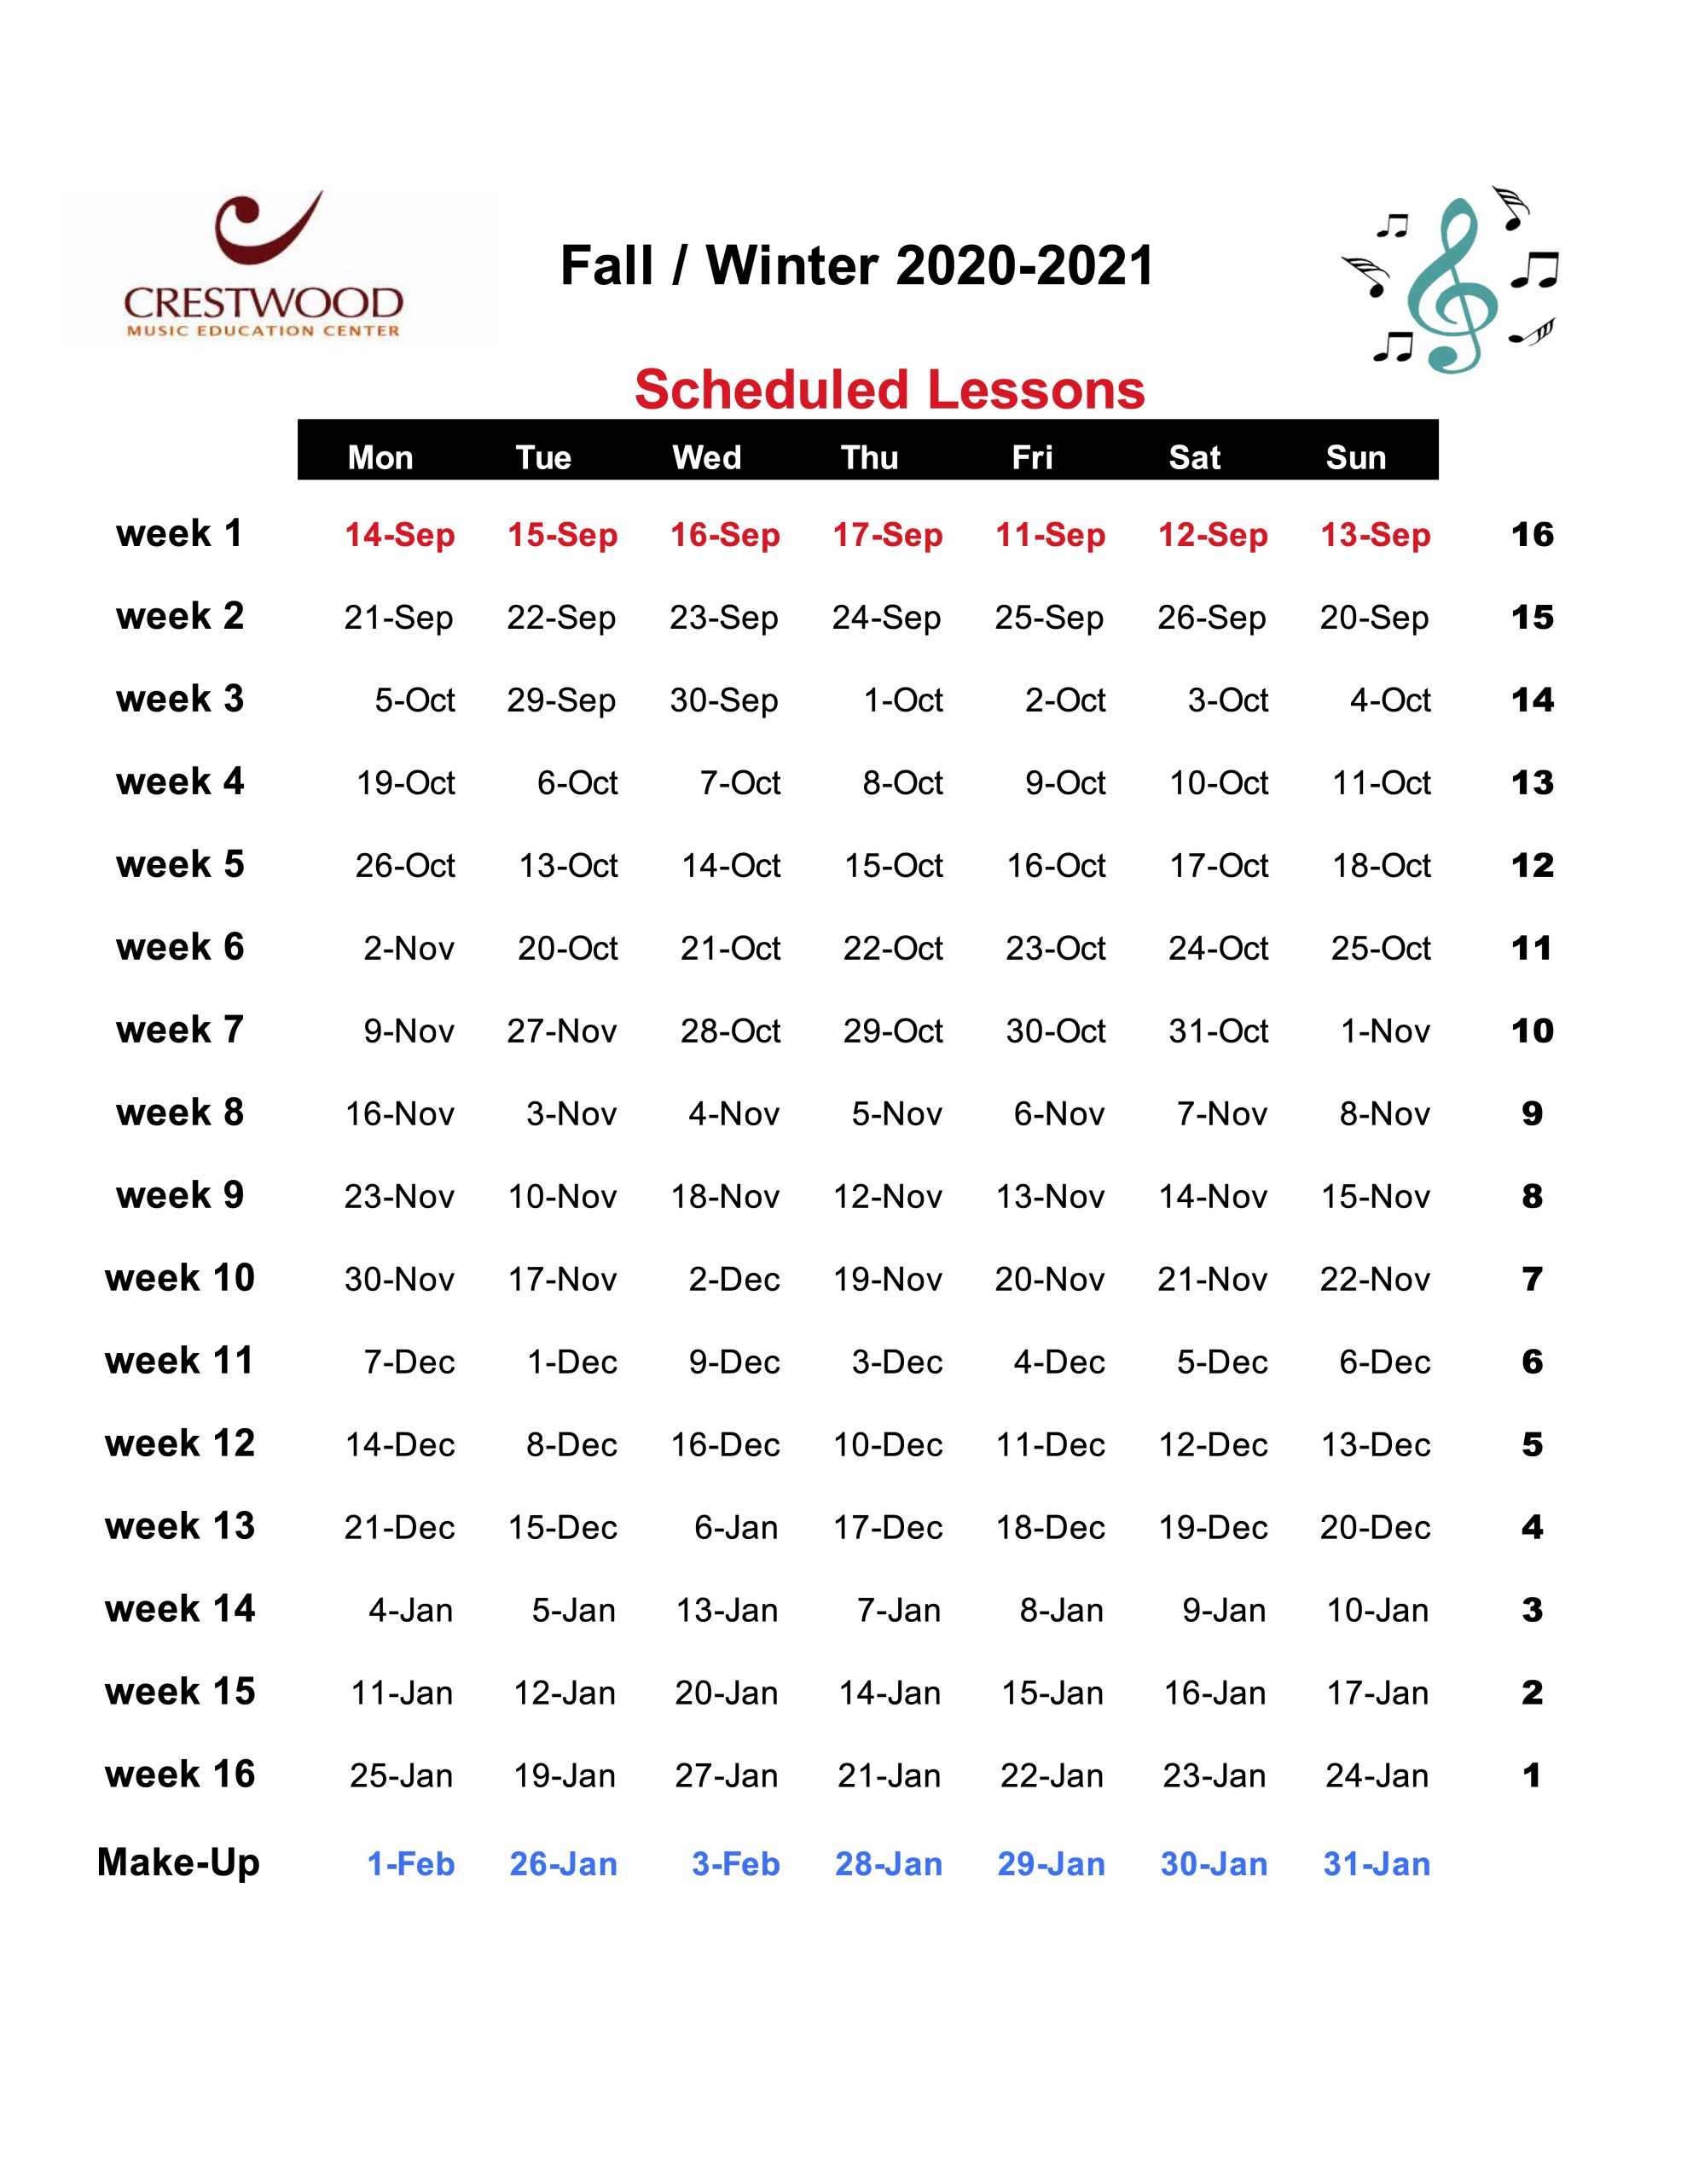 Fall/Winter Sessions 2020-2021